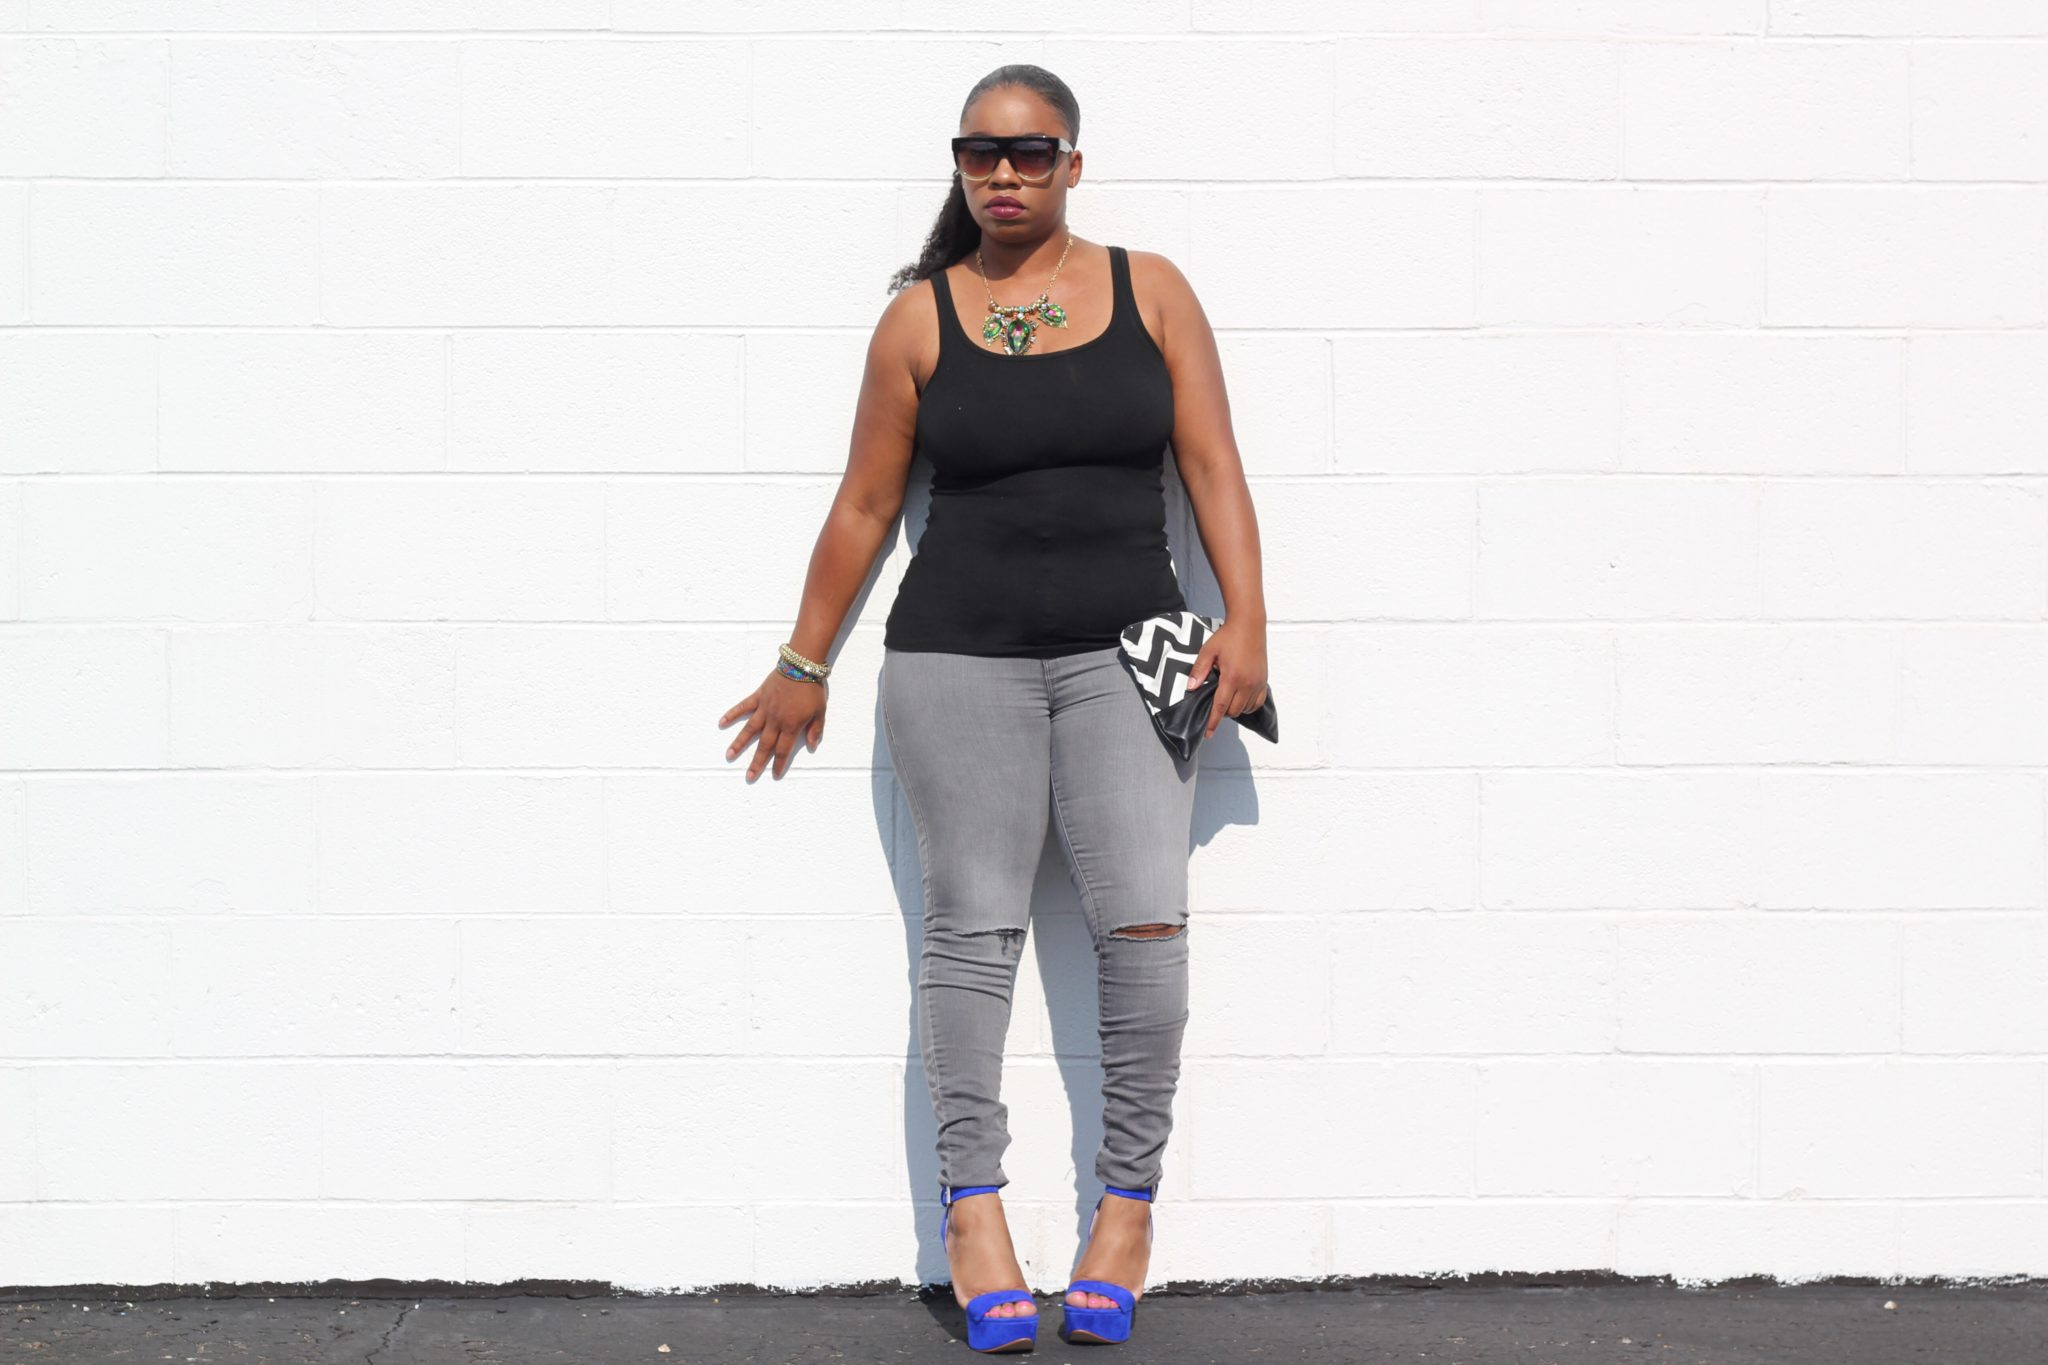 publish_snapshot-5-1 Pops!F21 Fashion Forever 21 how to OOTD Sassy Jones Boutique